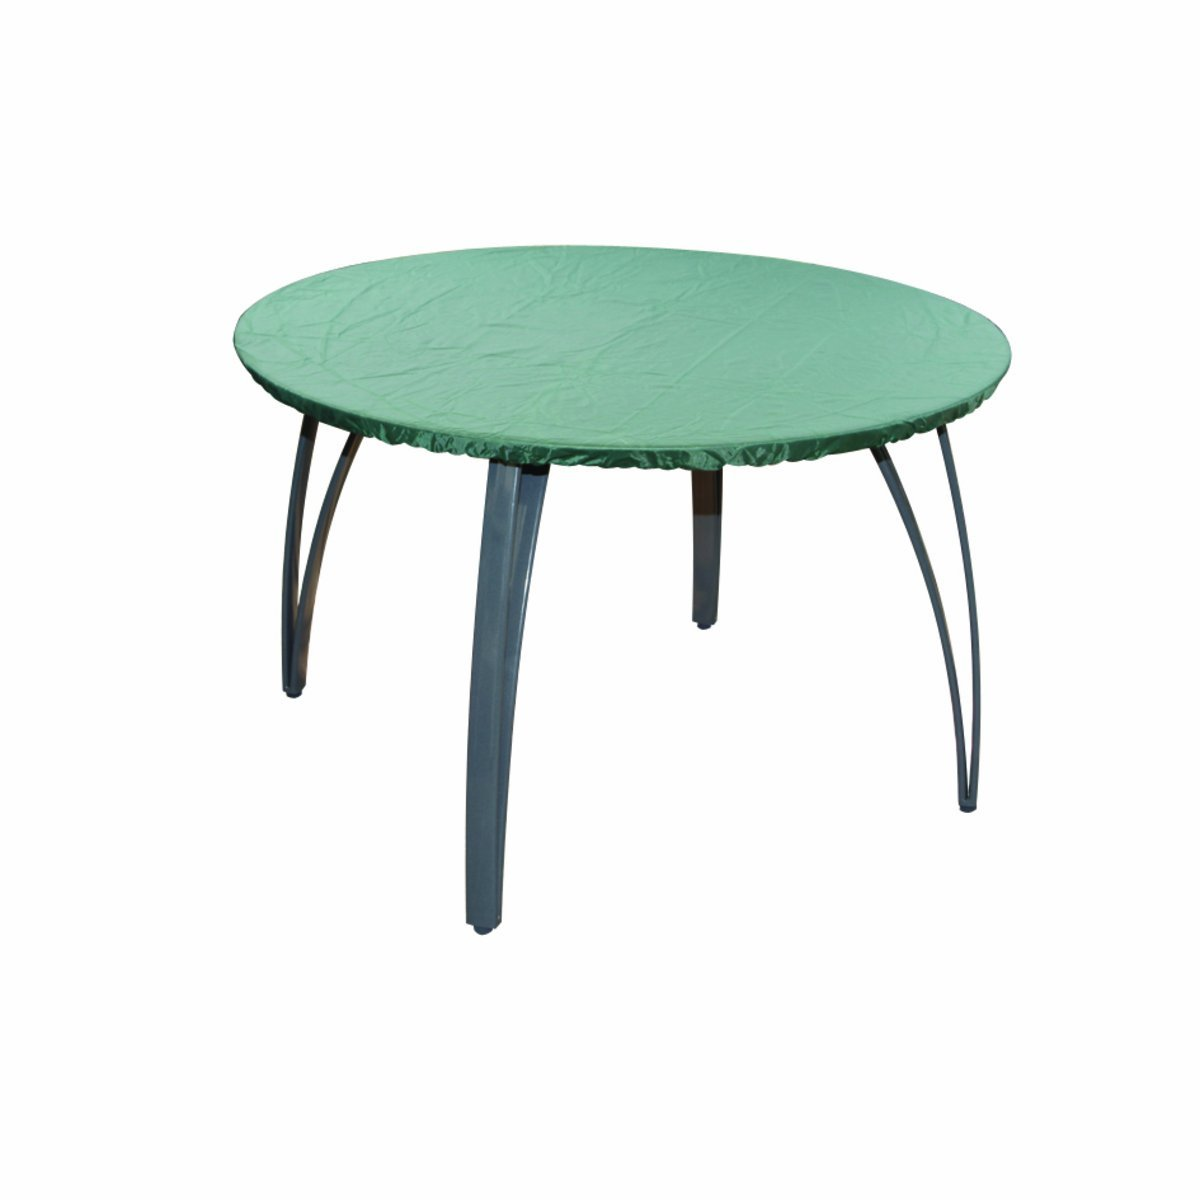 Photo of Circular table top cover - 4/6 seat